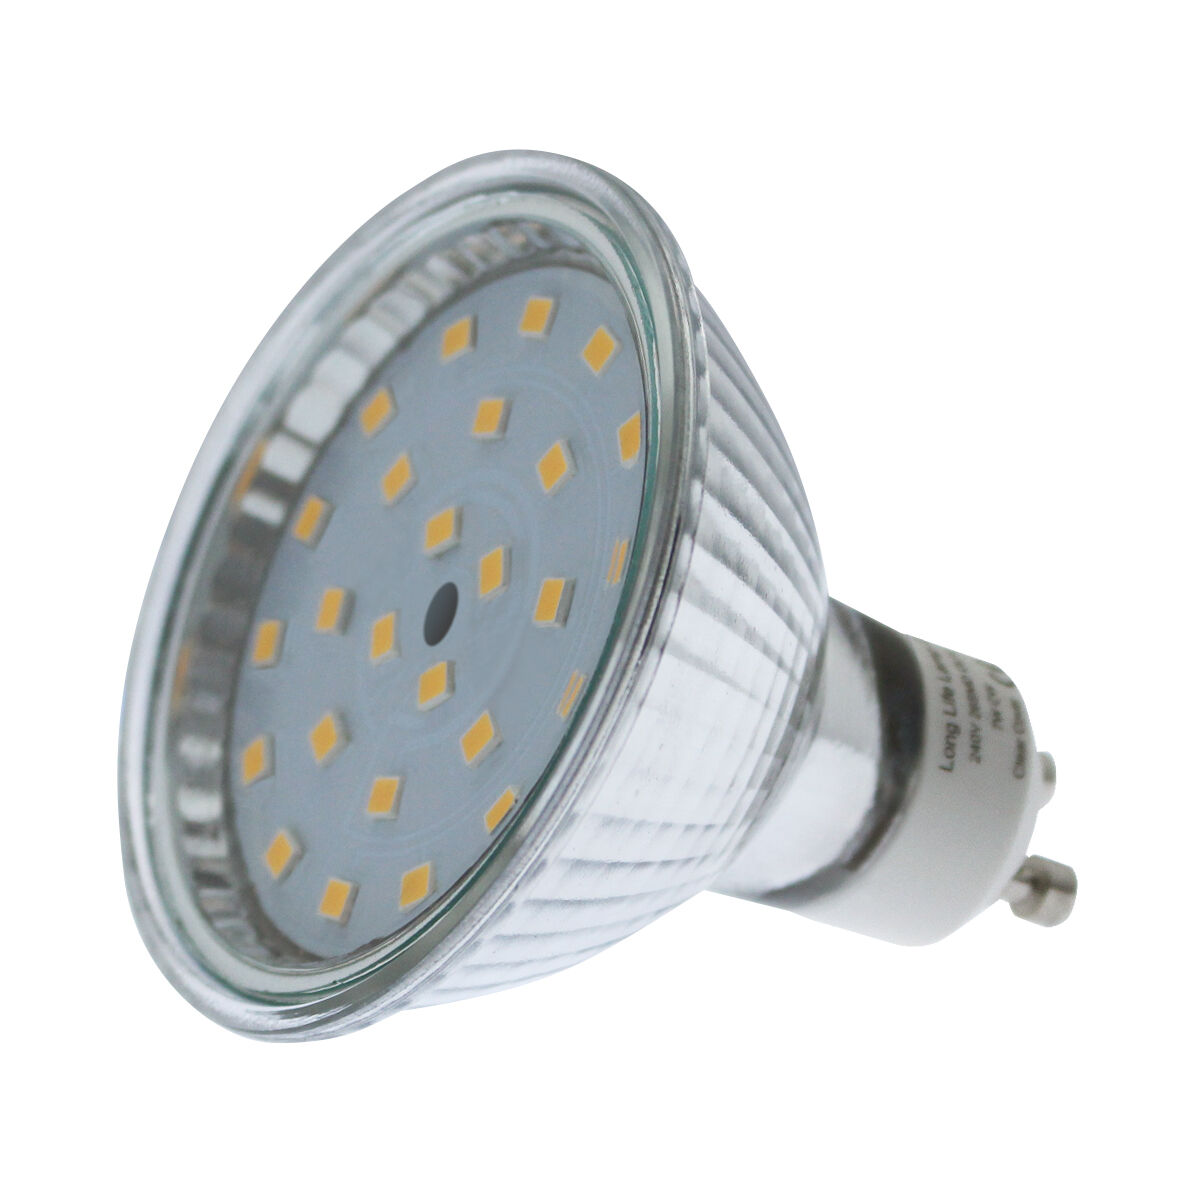 Led Gu10 7w 63mm Gu10 Led Replacement For 63mm Halogen Bulb 650